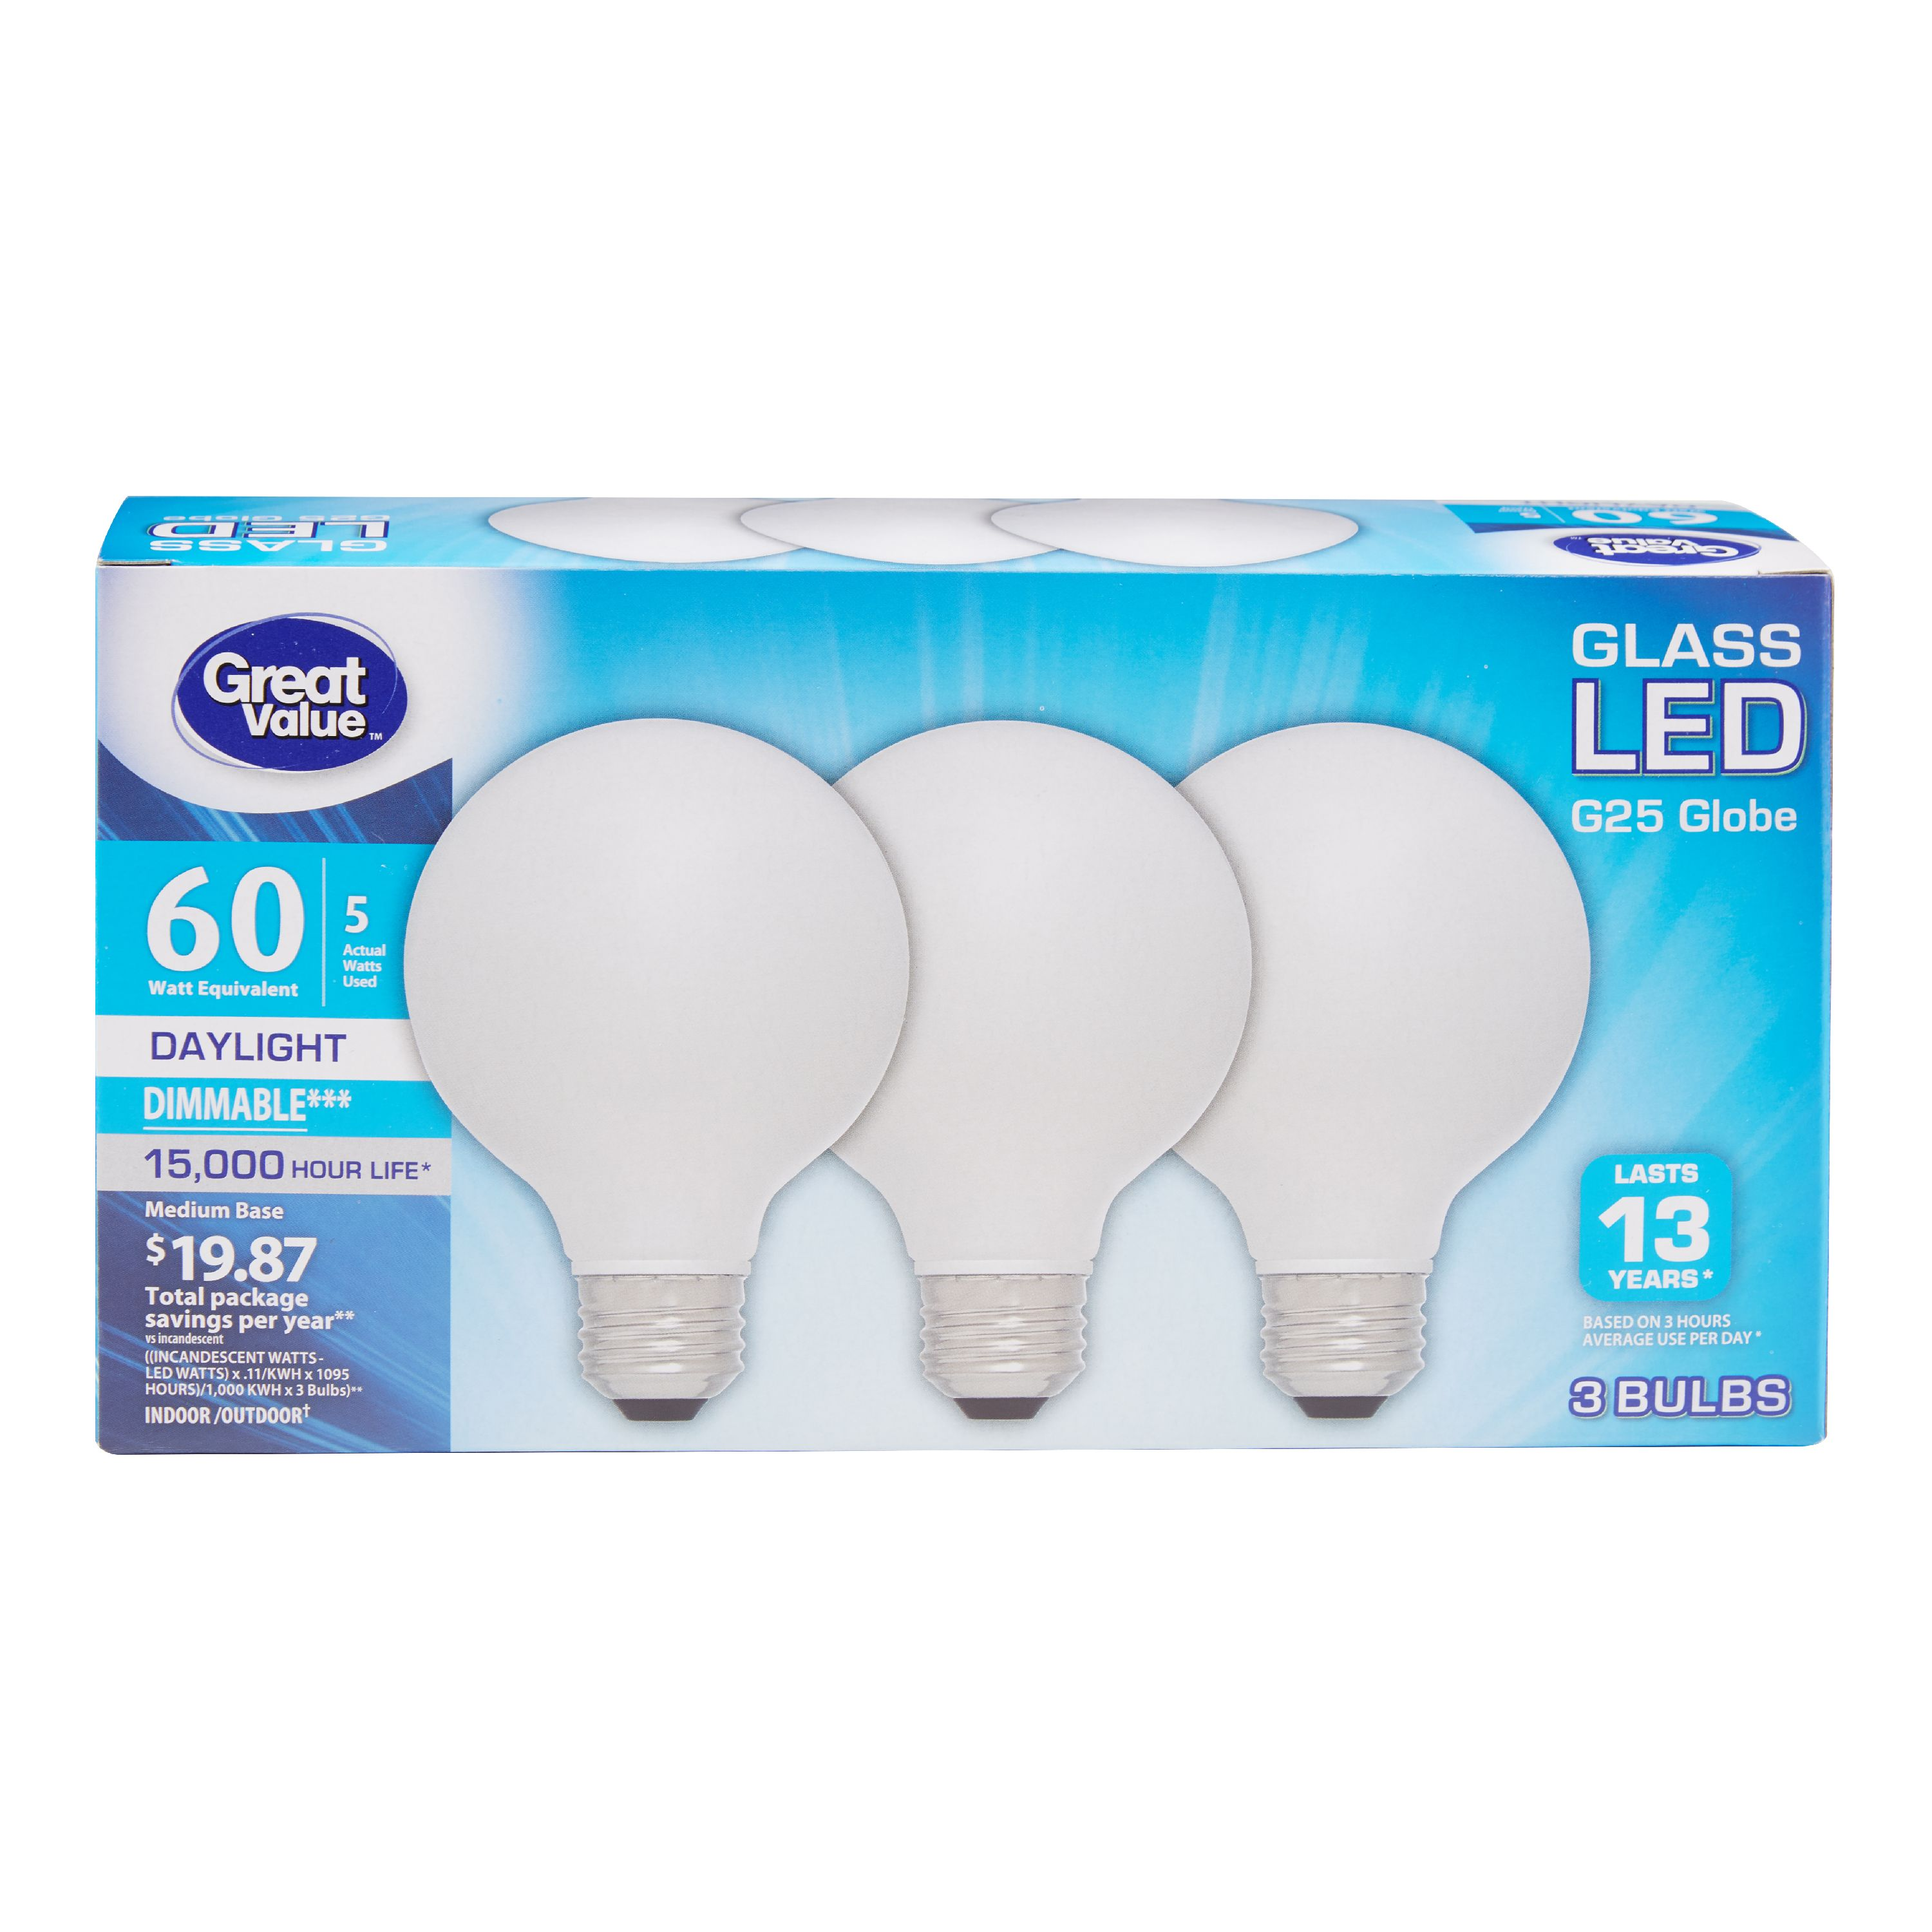 Great Value Glass LED G25 Globe Bulbs